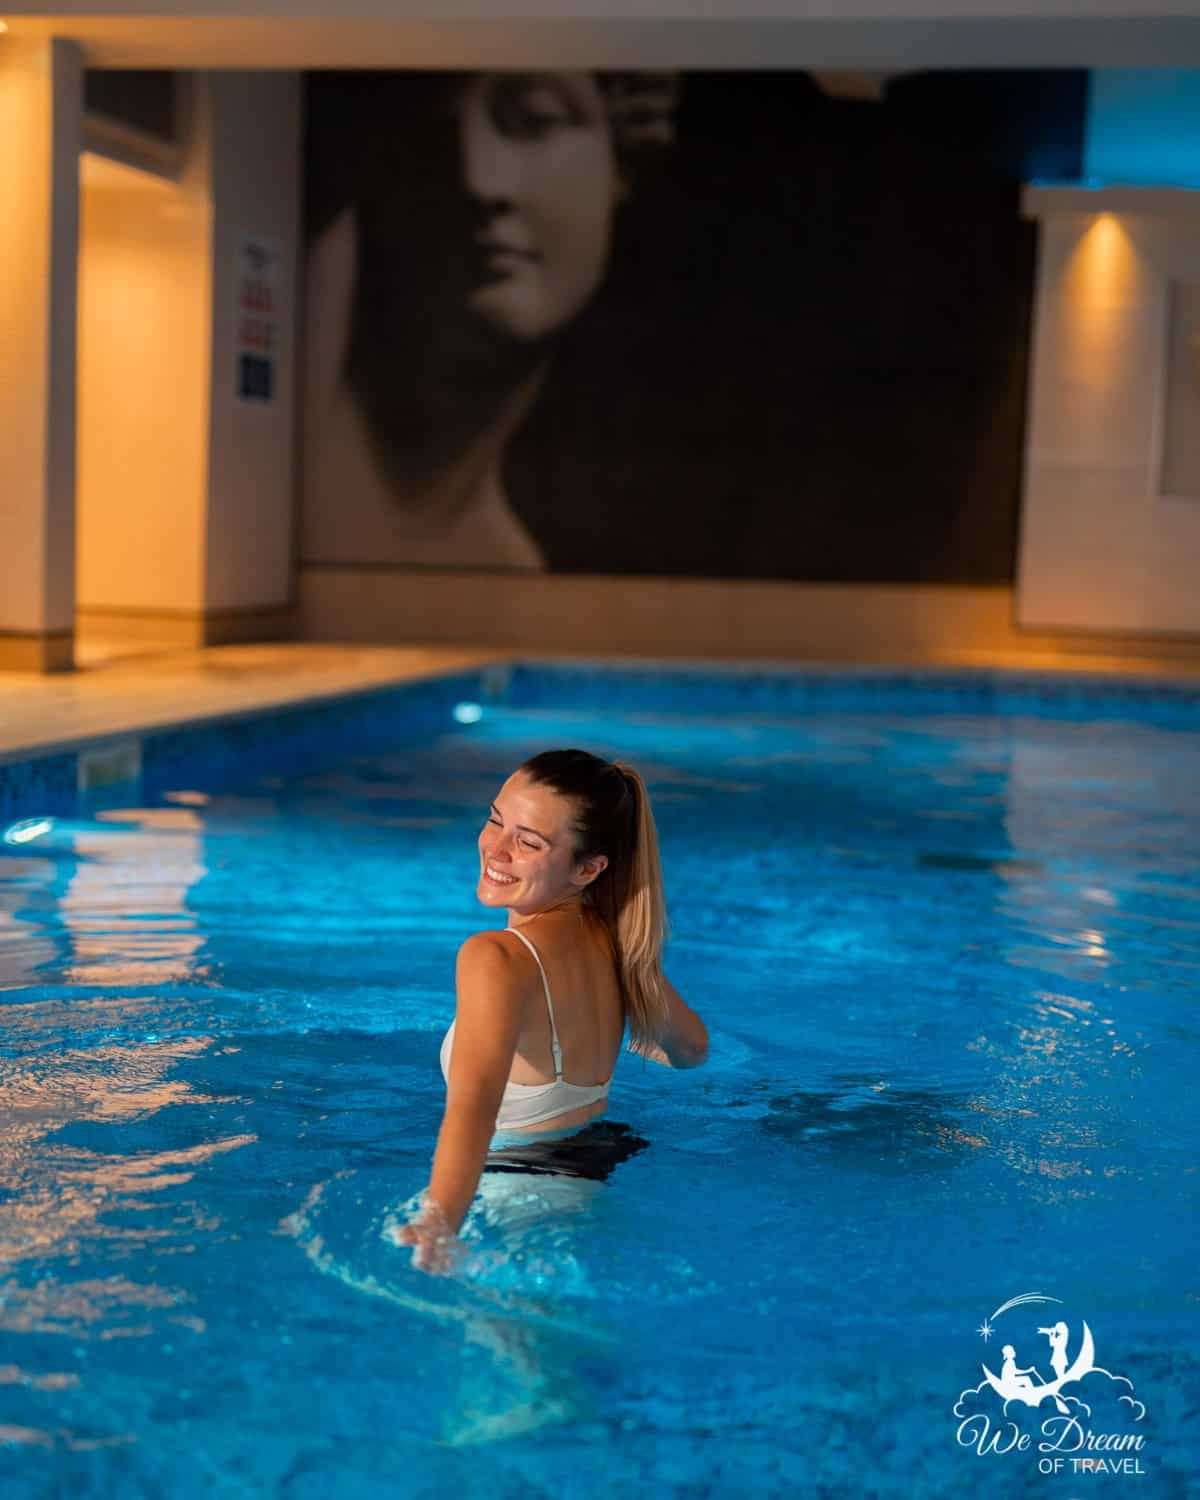 Enjoying the swimming pool at The Grand hotel in York